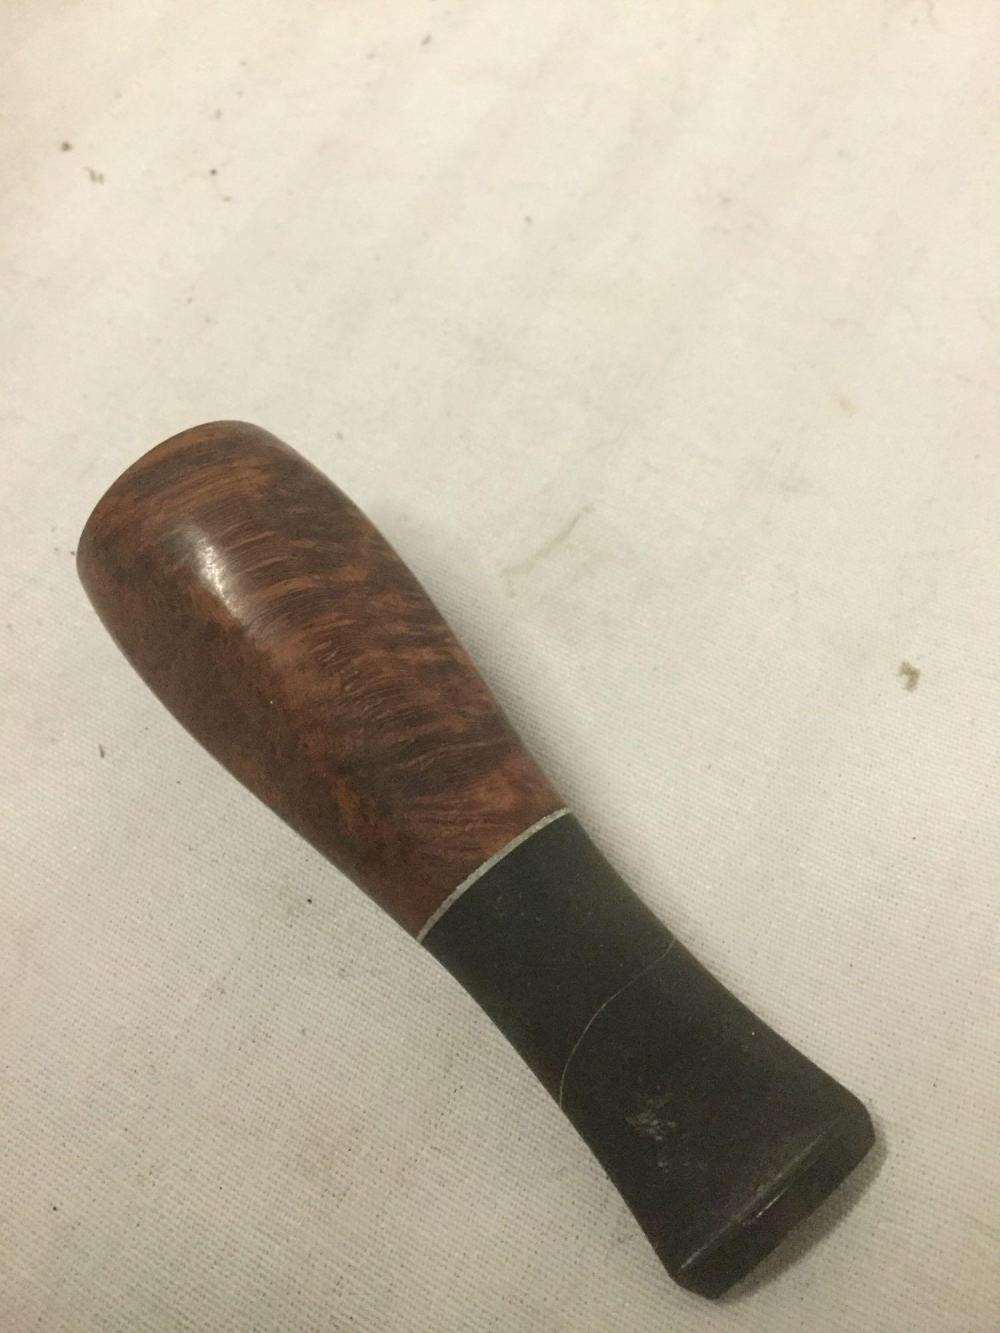 Lot 163: Genuine vintage kaywoodie pipe mouthpiece with Case